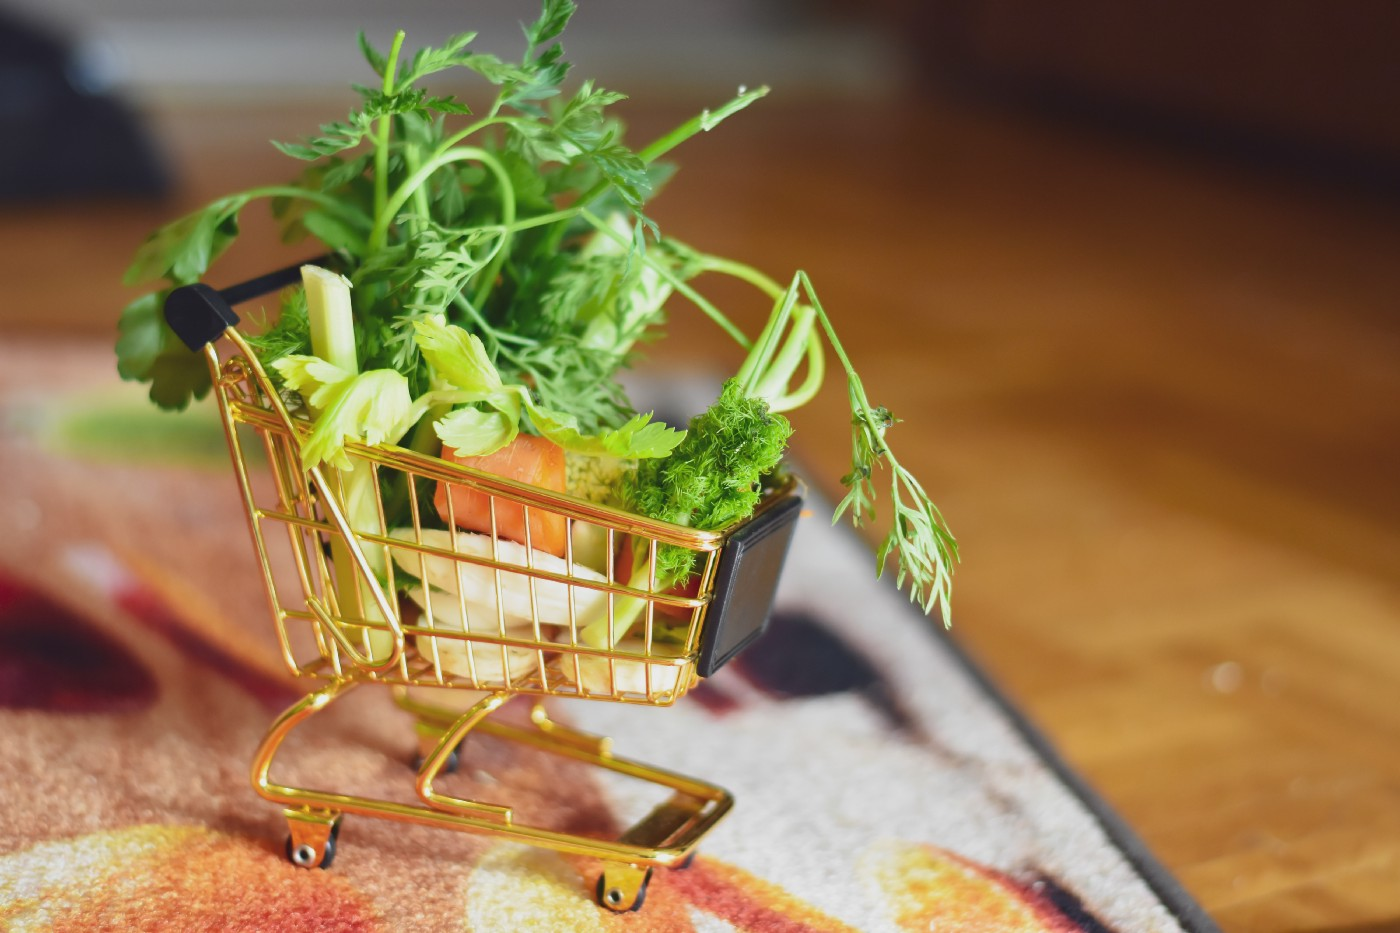 Tiny shopping cart filled with bits and pieces of vegetables.